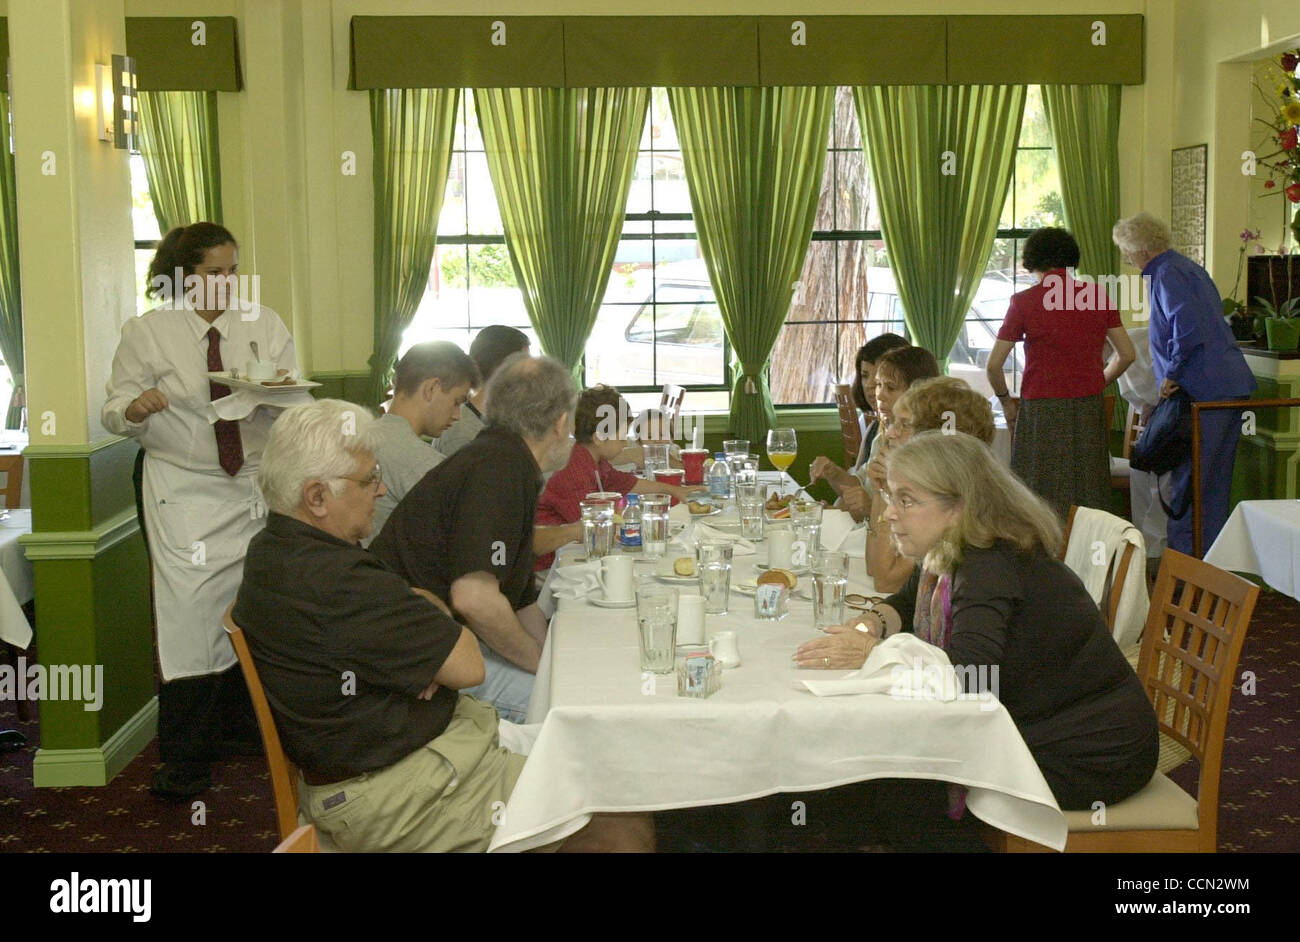 The dining room at Albany Bistro is busy on Sunday afternoon on July 18, 2004 in Albany, Calif. (CONTRA COSTA TIMES/EDDIE - Stock Image